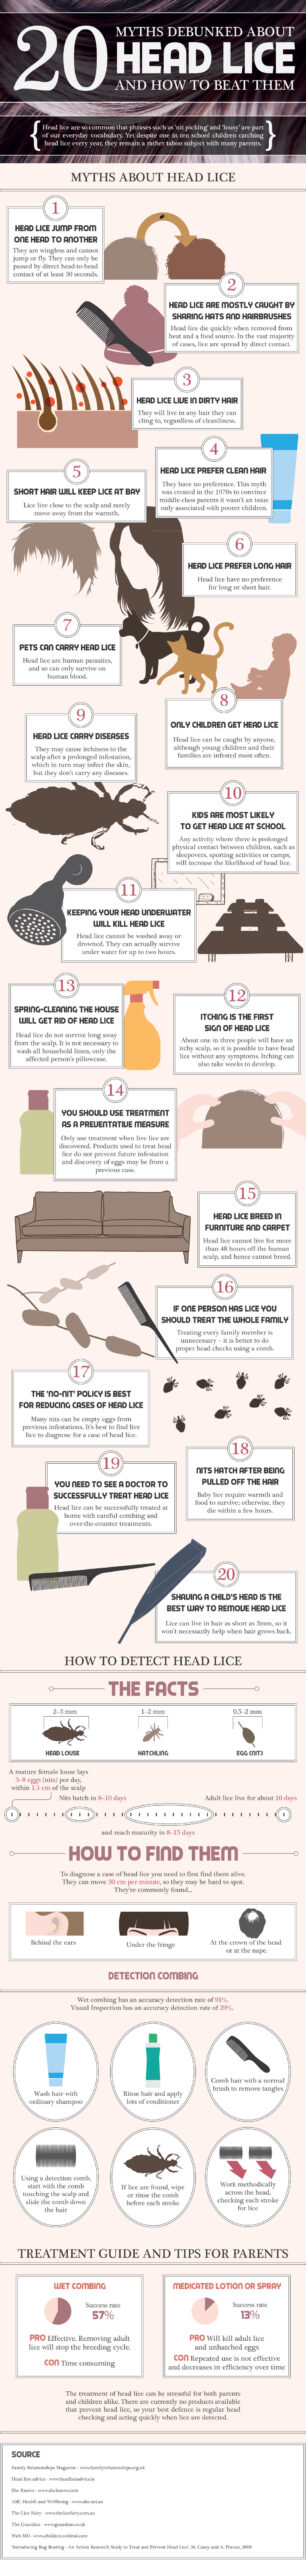 20-facts-about-headlice